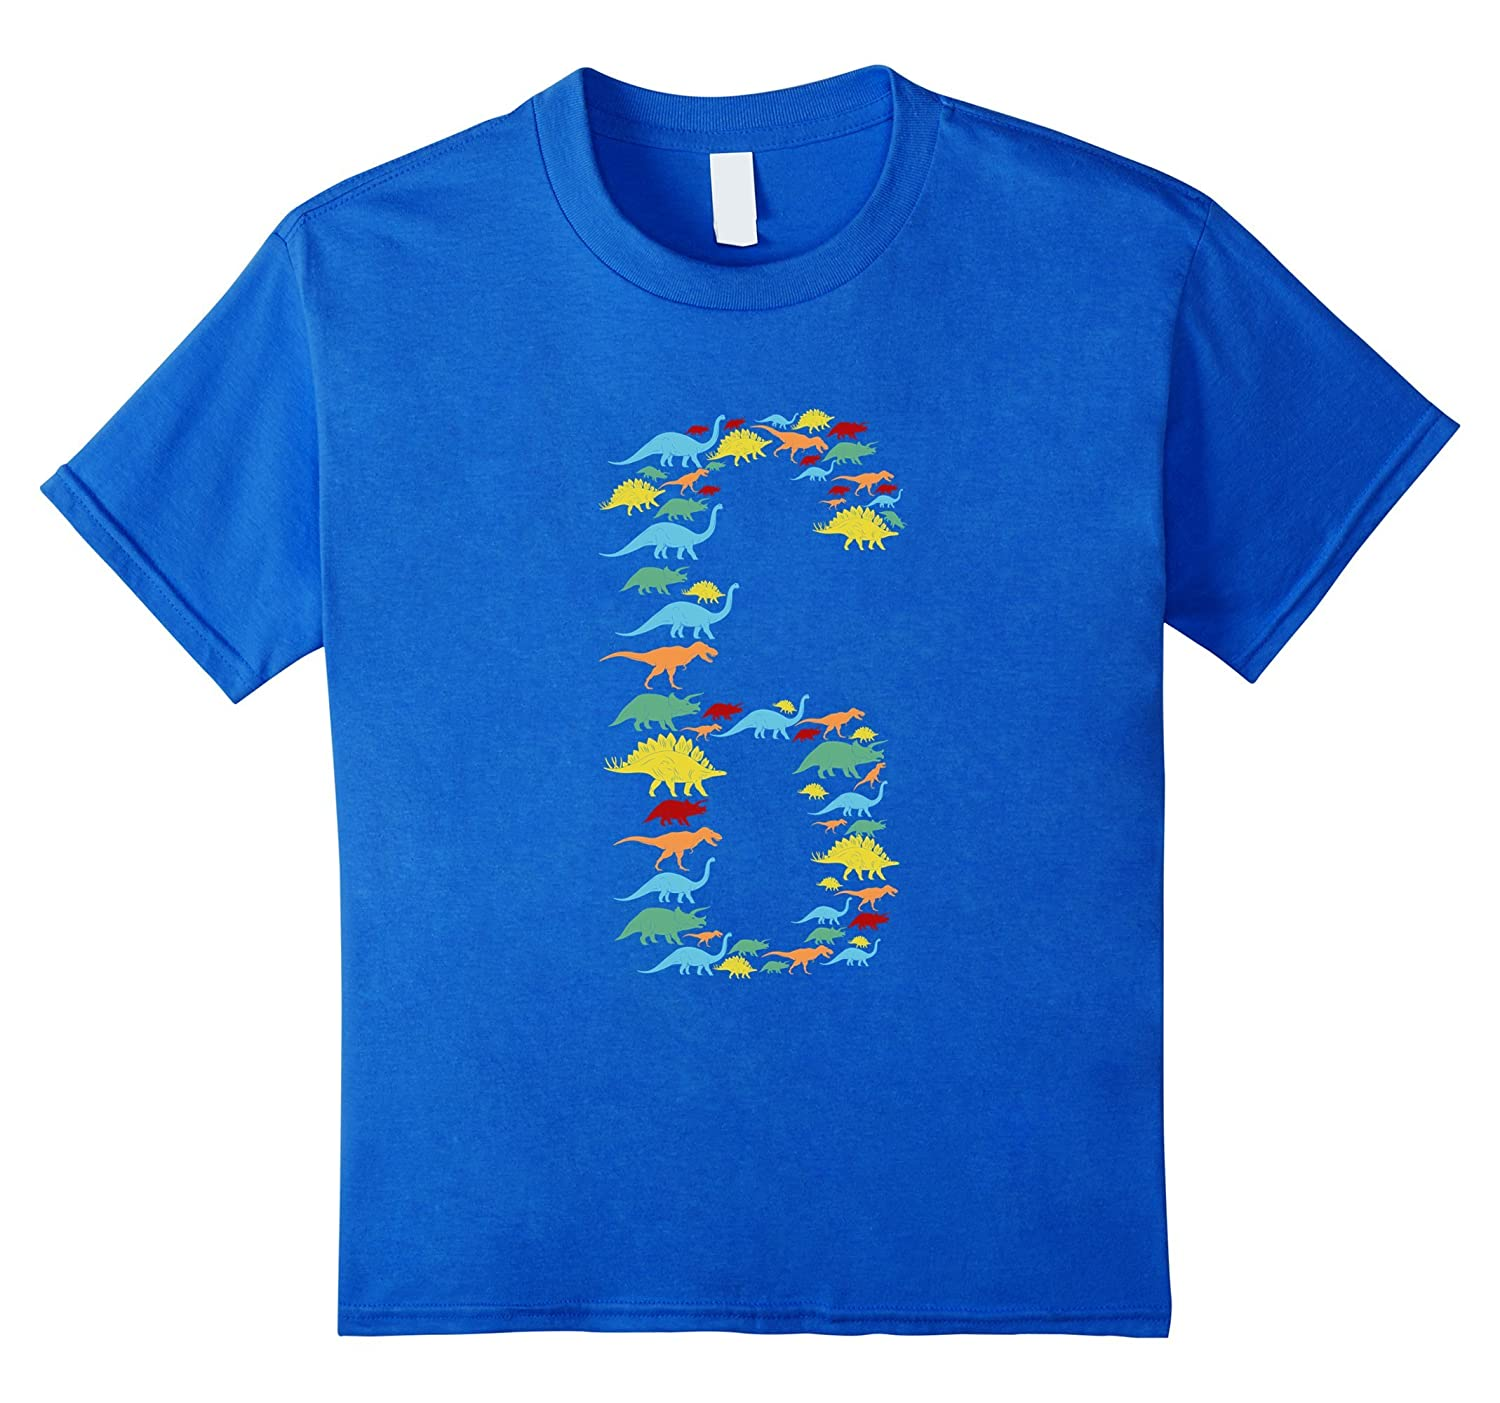 Kids Dinosaur Birthday T Shirt Girls-Awarplus